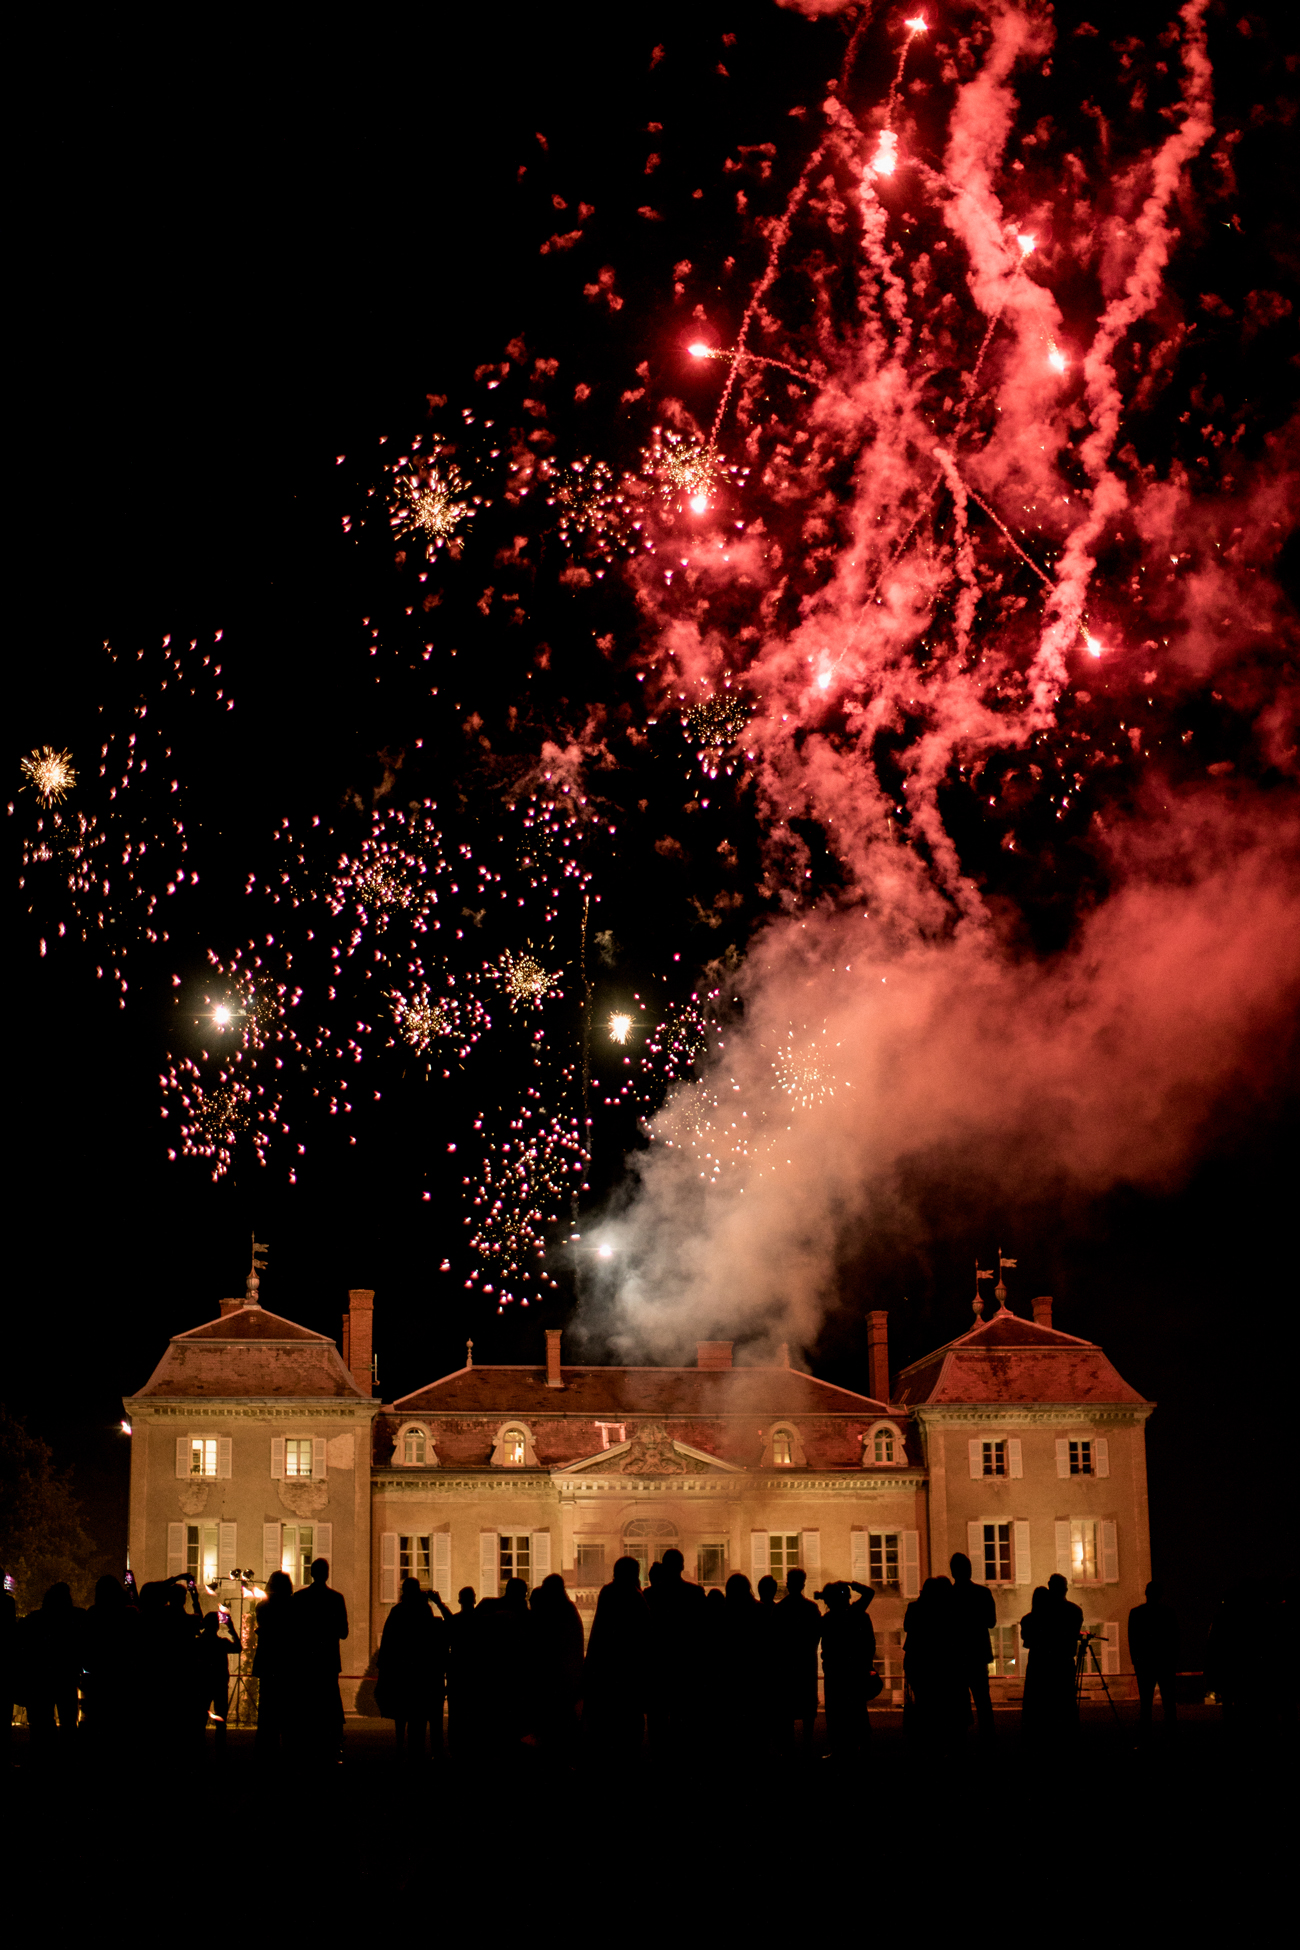 fireworks display after wedding day